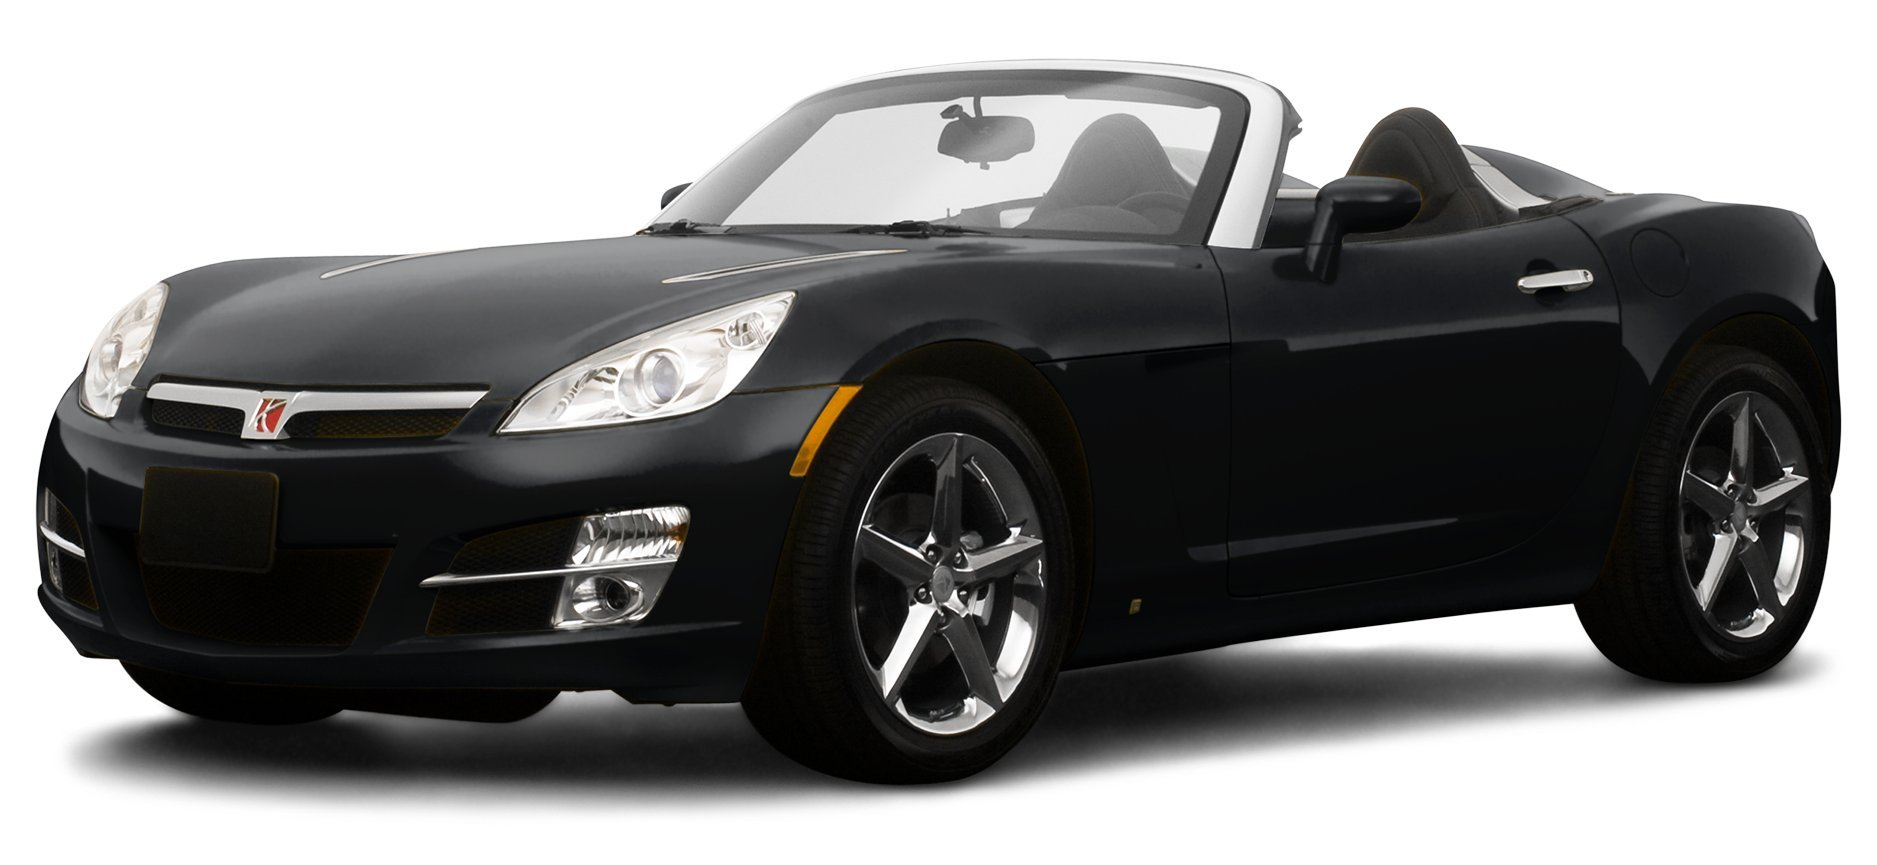 amazon com 2009 saturn sky reviews images and specs vehicles rh amazon com Datsun Automatic Transmission Automatic Transmission Rebuilding Videos